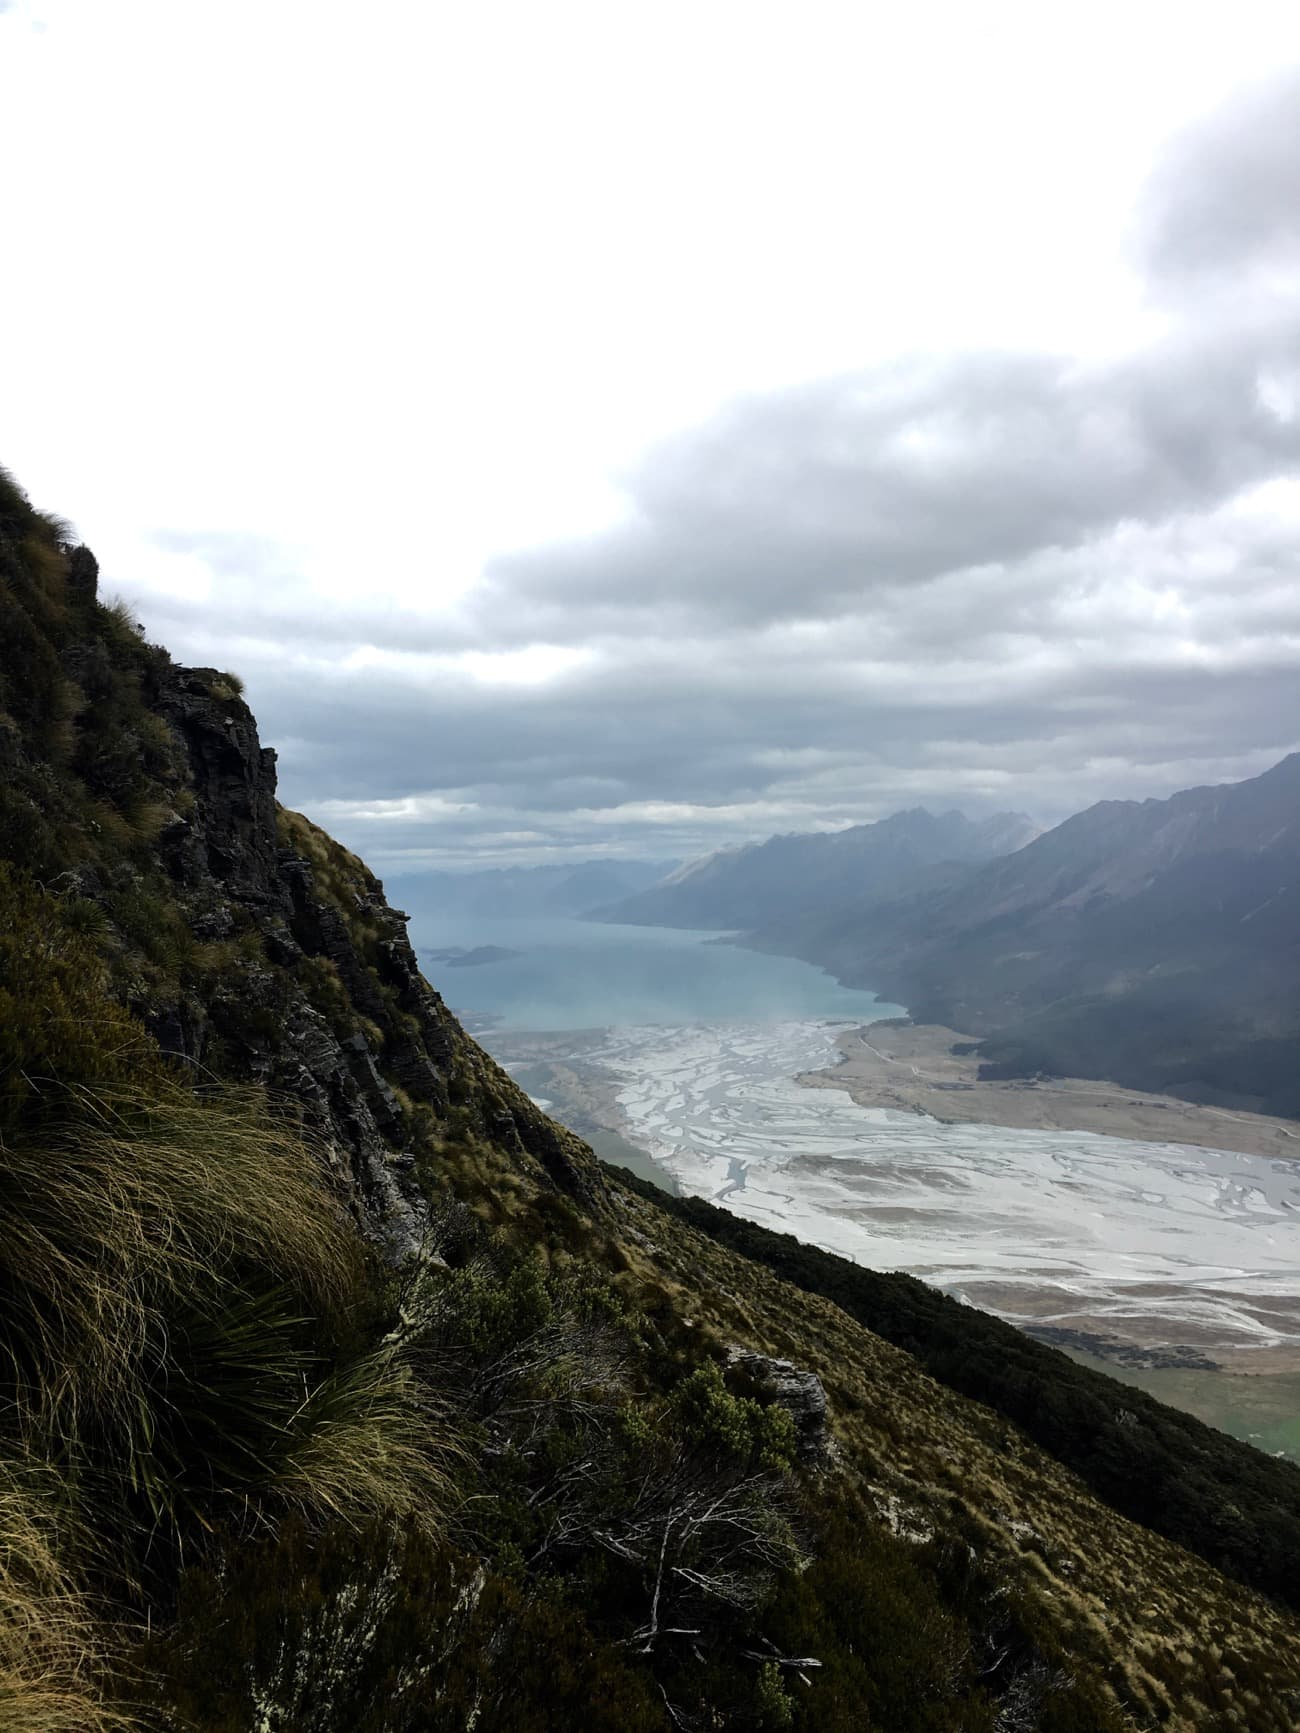 The hike to Mt. Alfred in Glenorchy